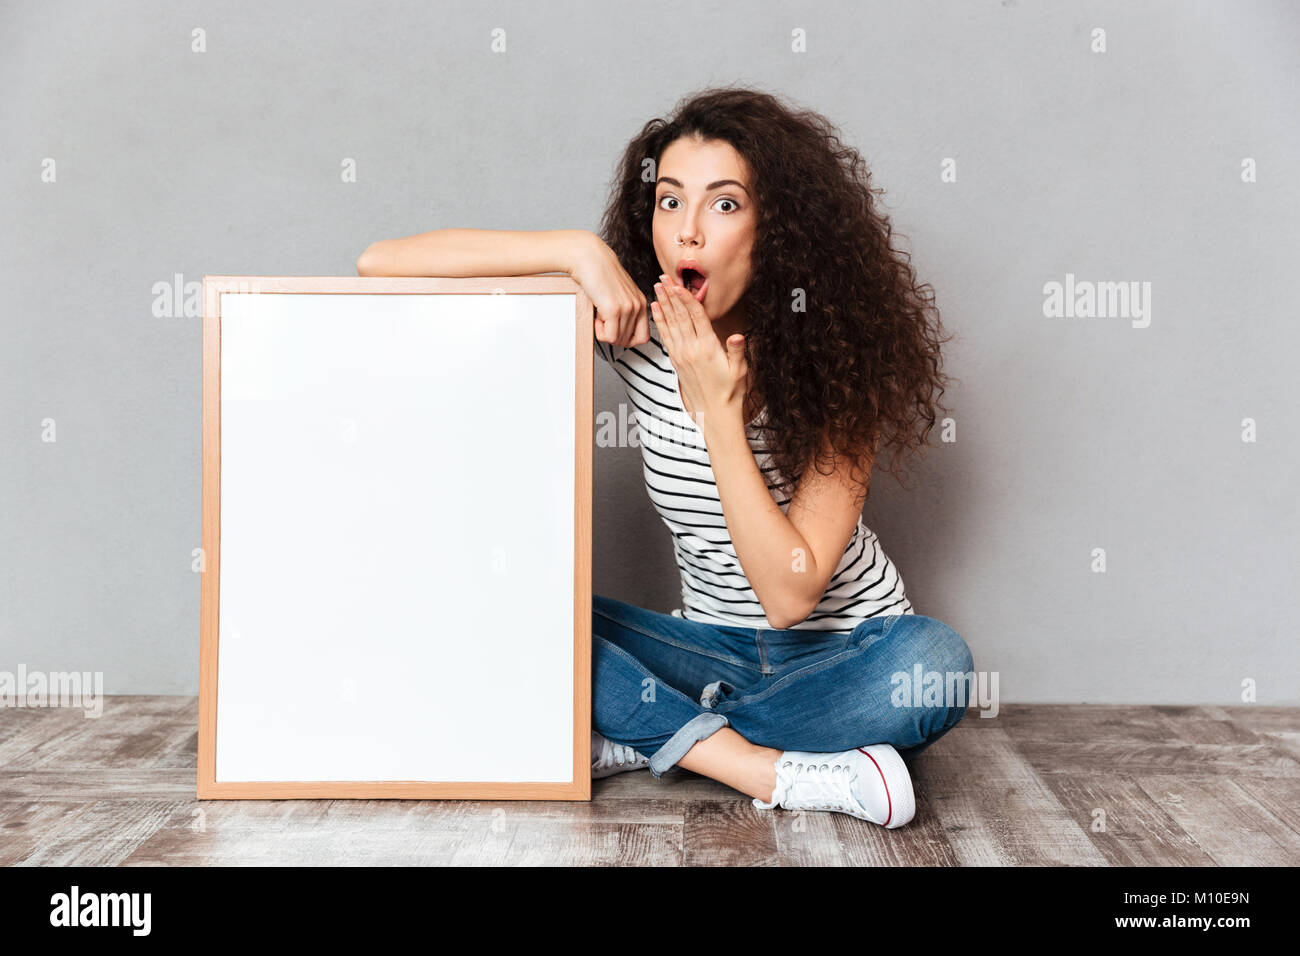 Funny portrait of adult girl in jeans sitting in lotus pose on the floor expressing embarrassment and surprise, - Stock Image